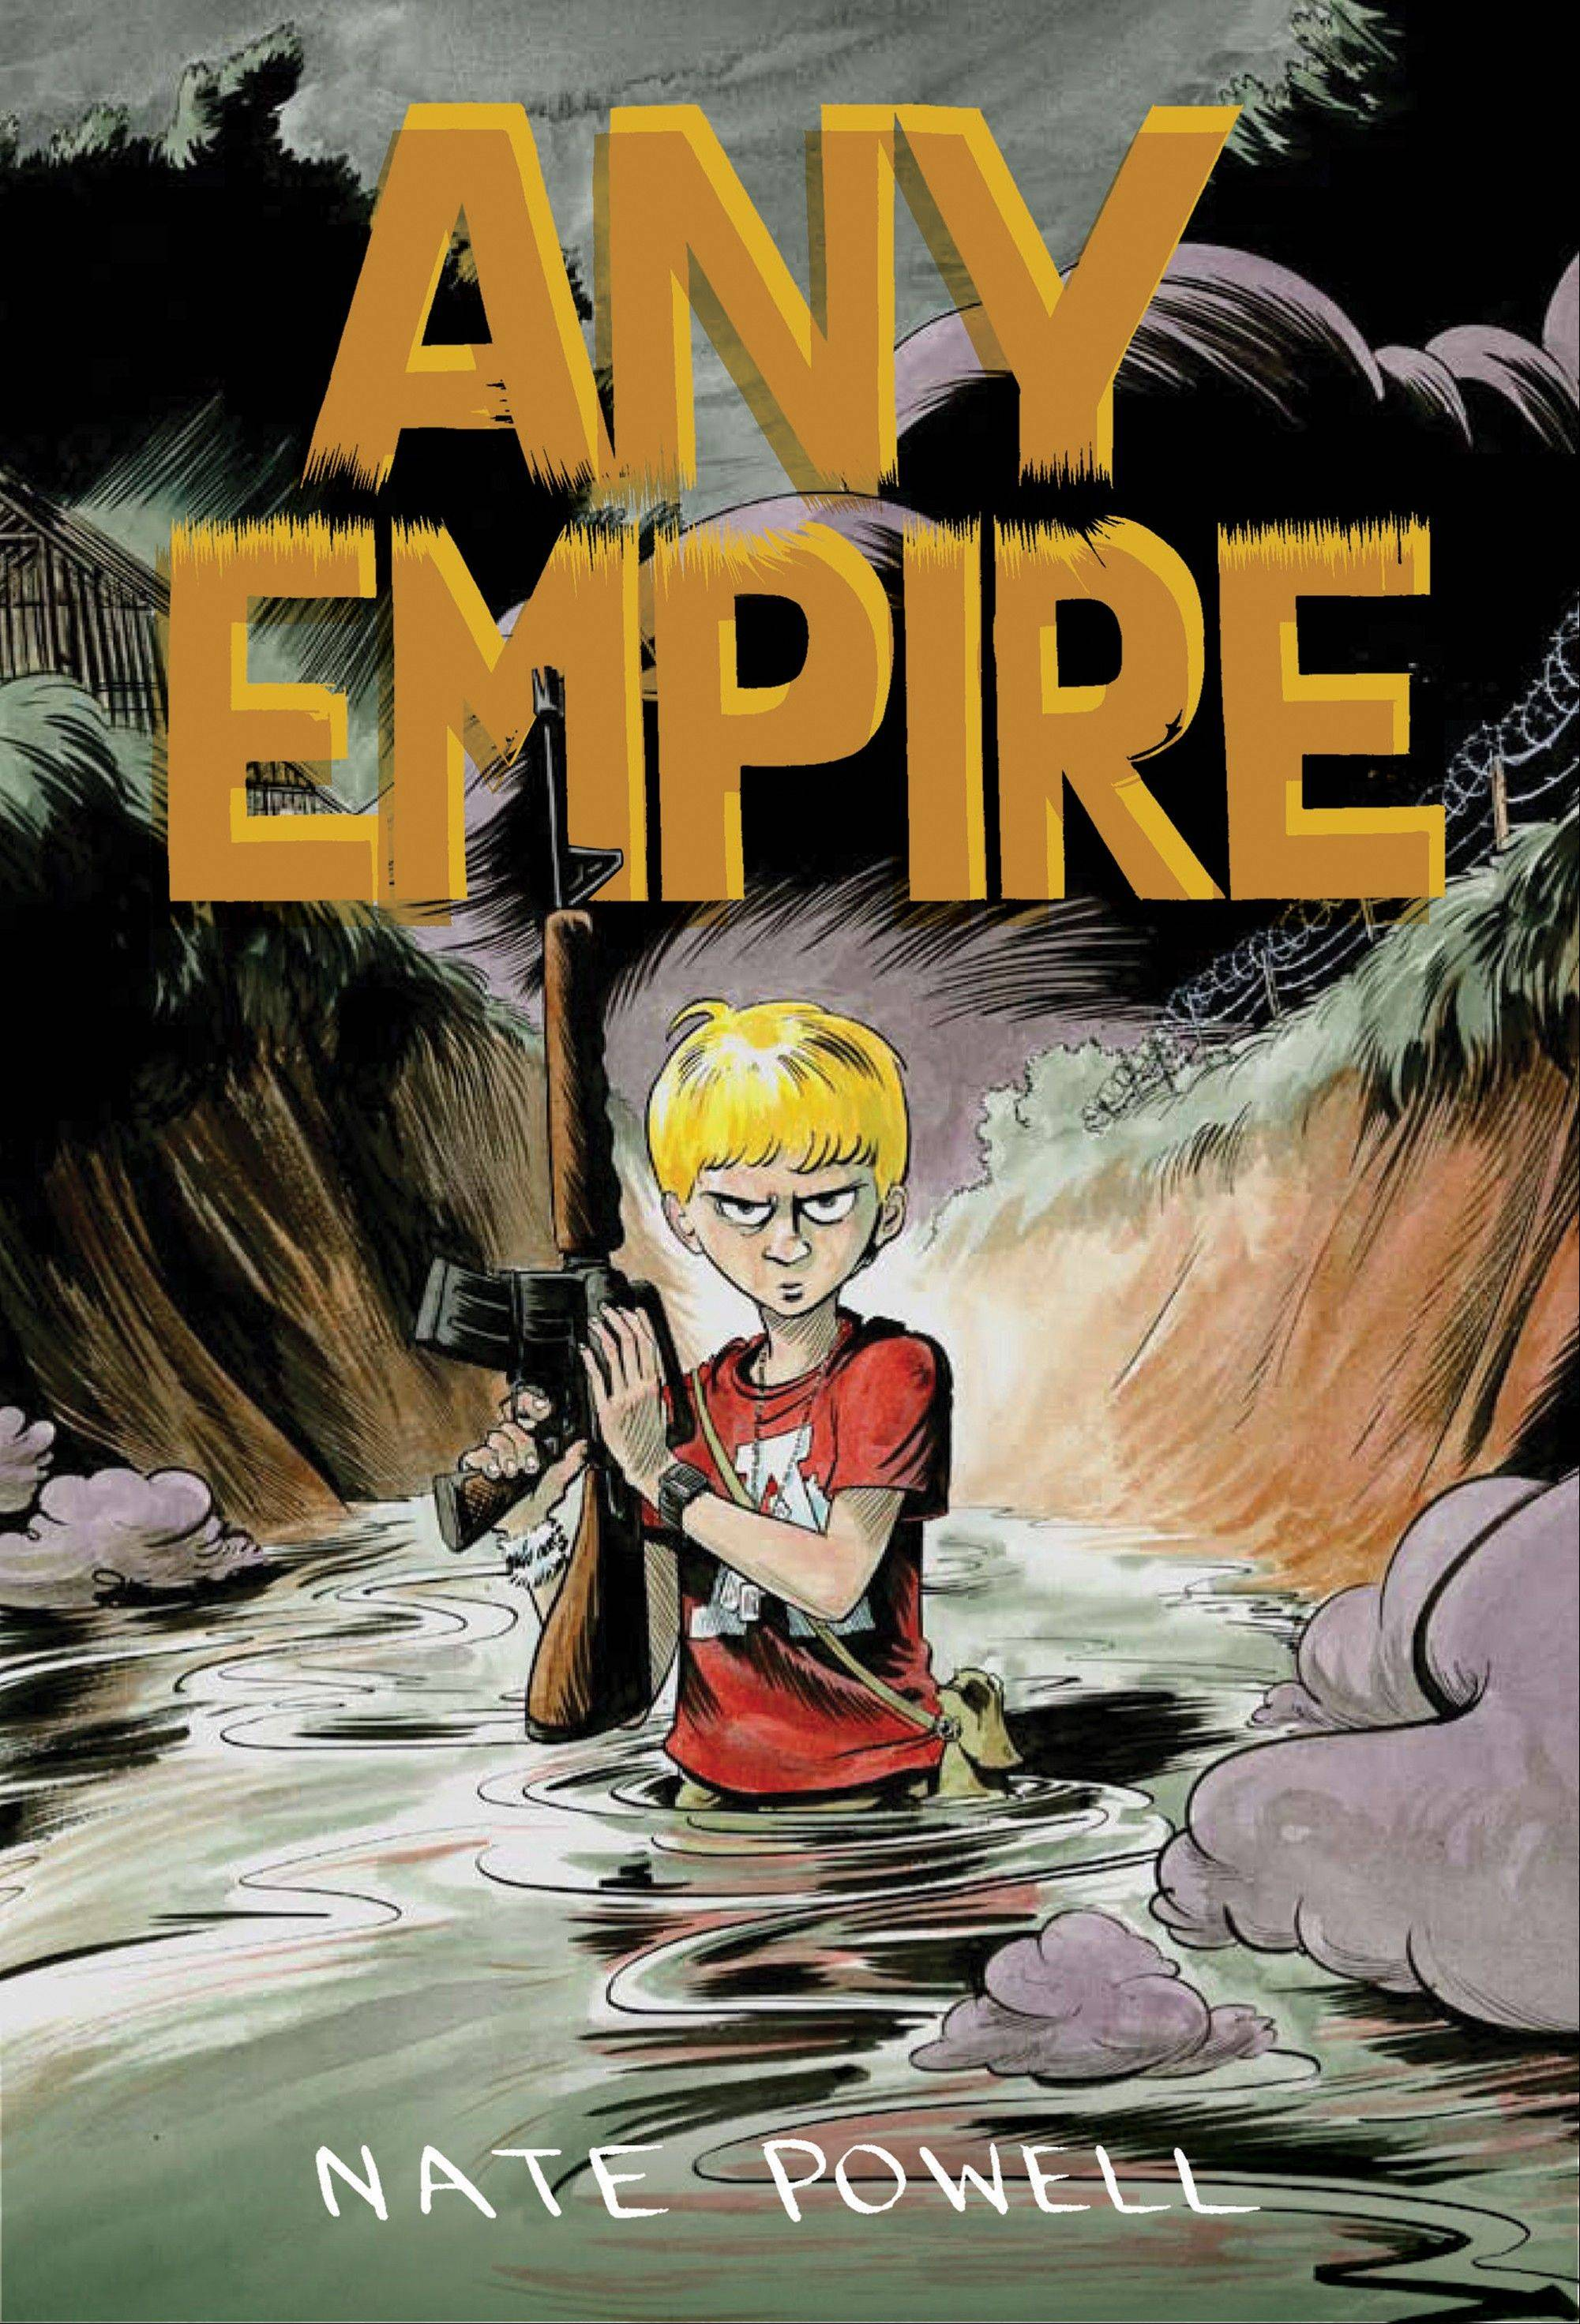 """Any Empire"" had a successful debut at Comic-Con International in San Diego a few weeks ago."